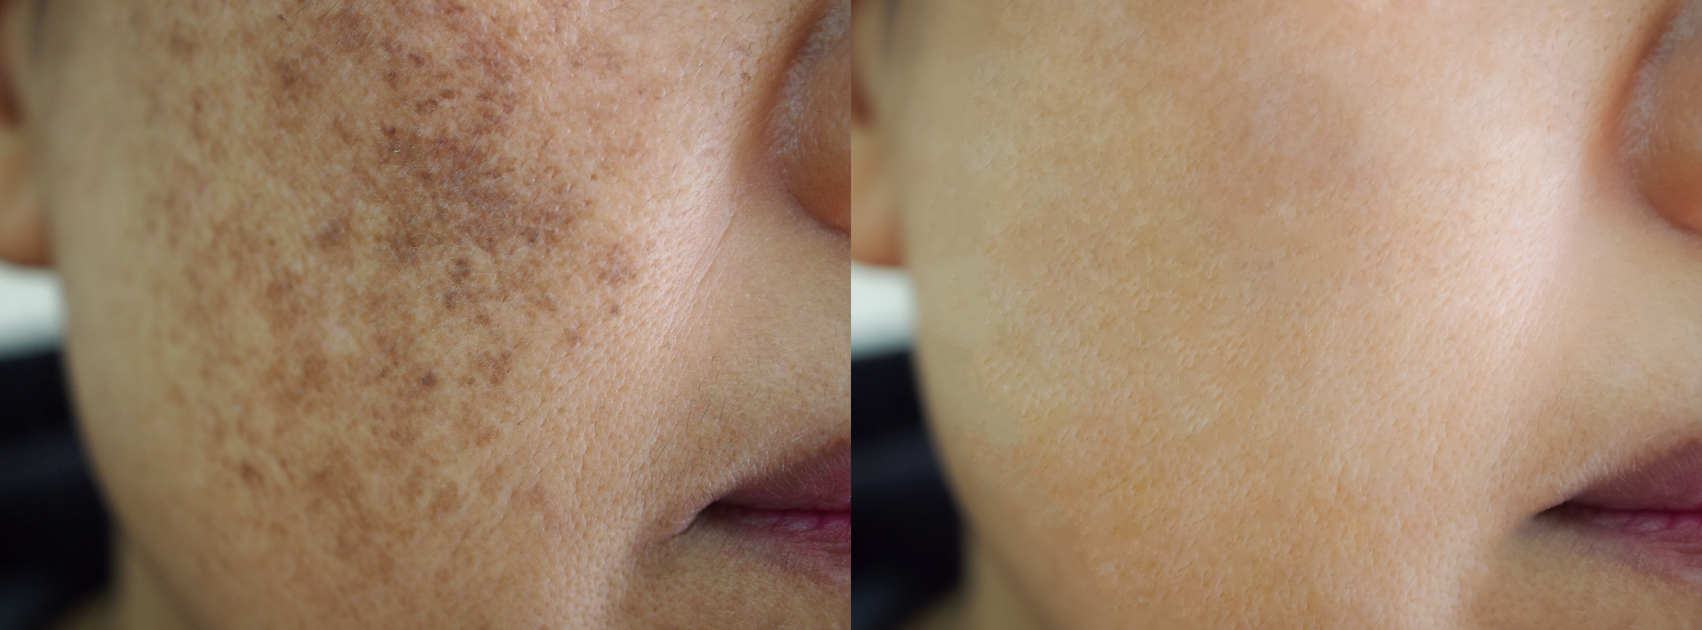 Treatment of Facial Pigmentation with IPL